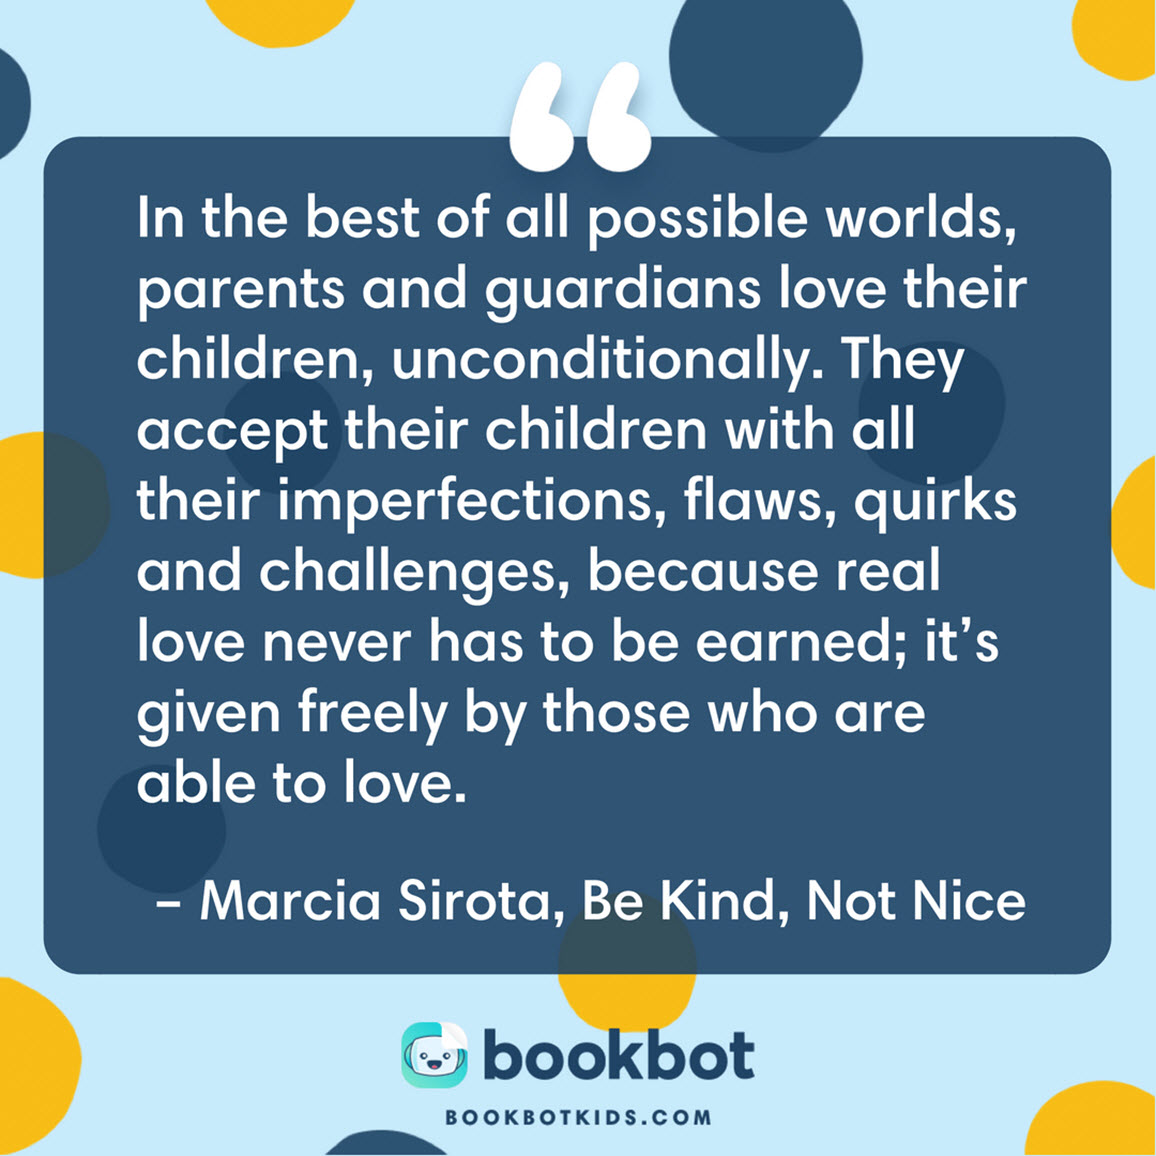 In the best of all possible worlds, parents and guardians love their children, unconditionally. They accept their children with all their imperfections, flaws, quirks and challenges, because real love never has to be earned; it's given freely by those who are able to love. – Marcia Sirota, Be Kind, Not Nice